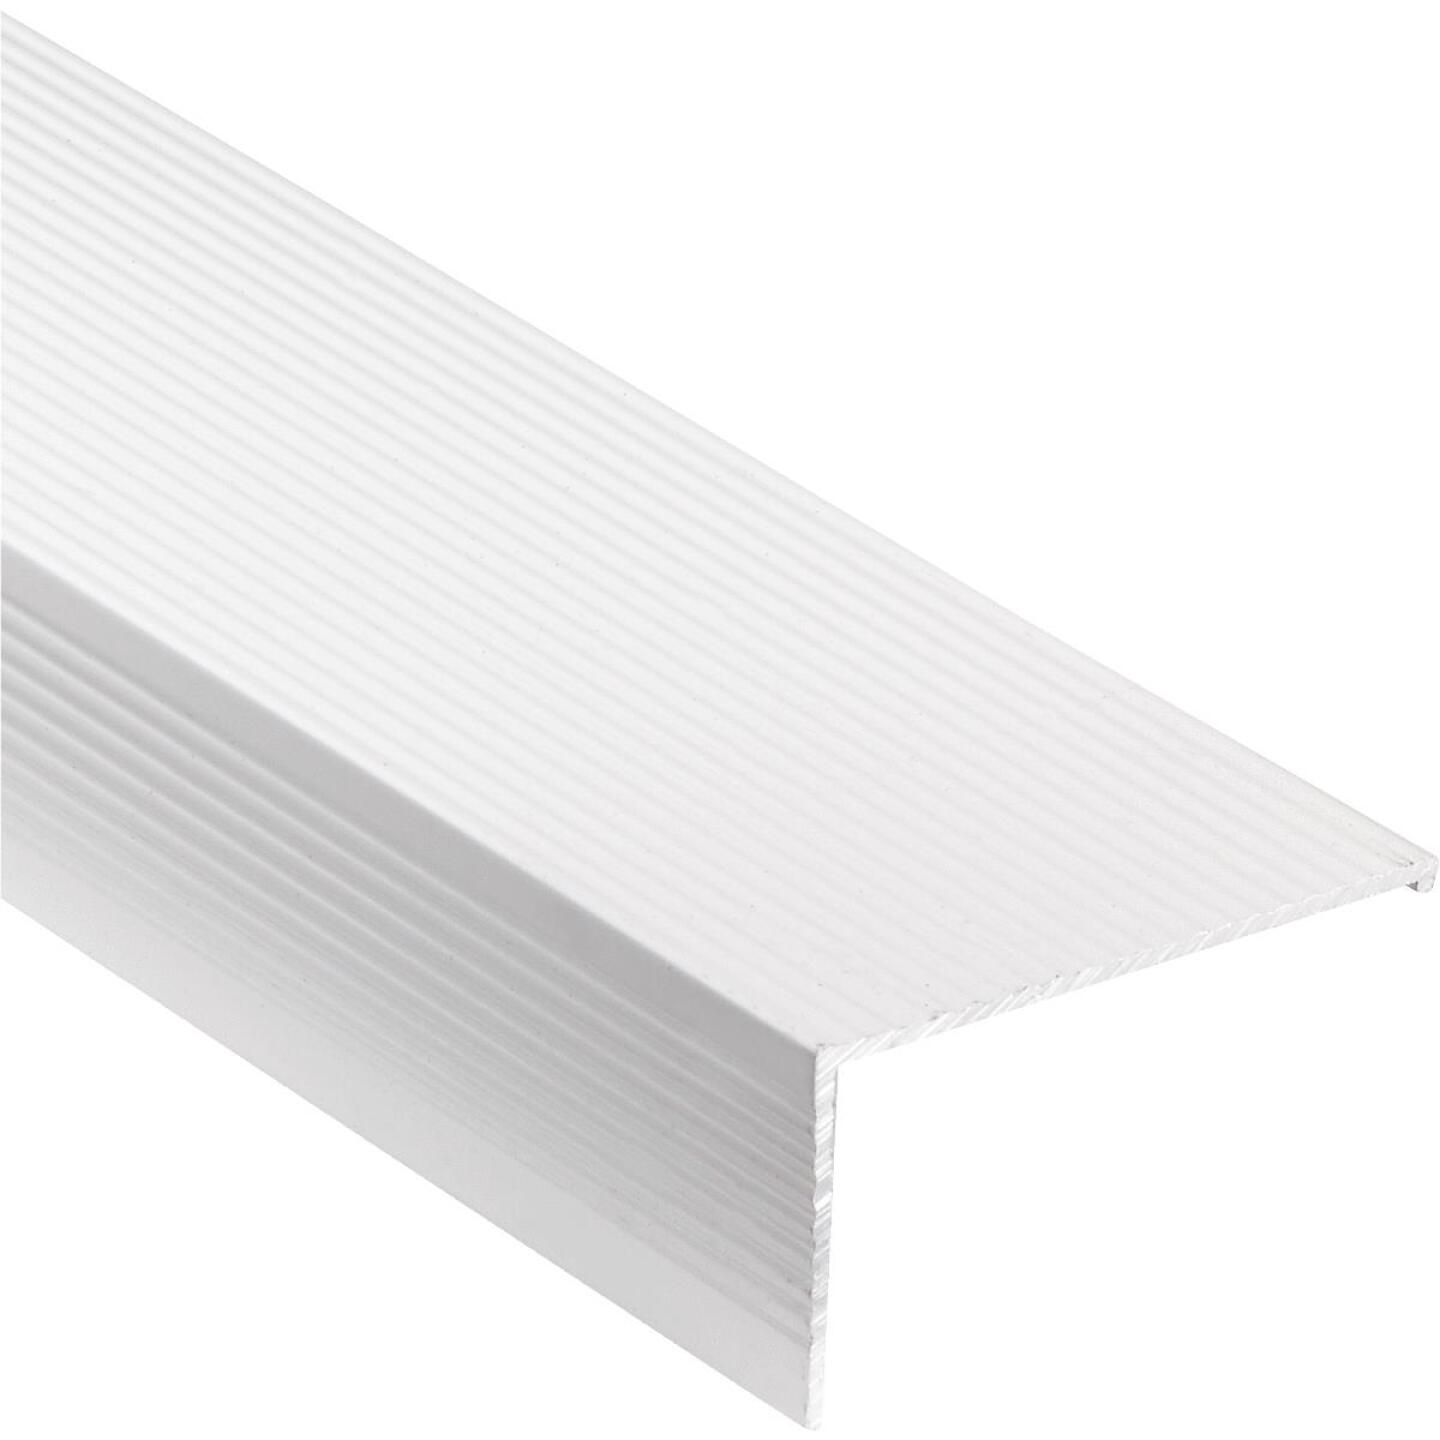 """M-D Ultra 2-3/4"""" x 72"""" White Sill Nosing Image 1"""